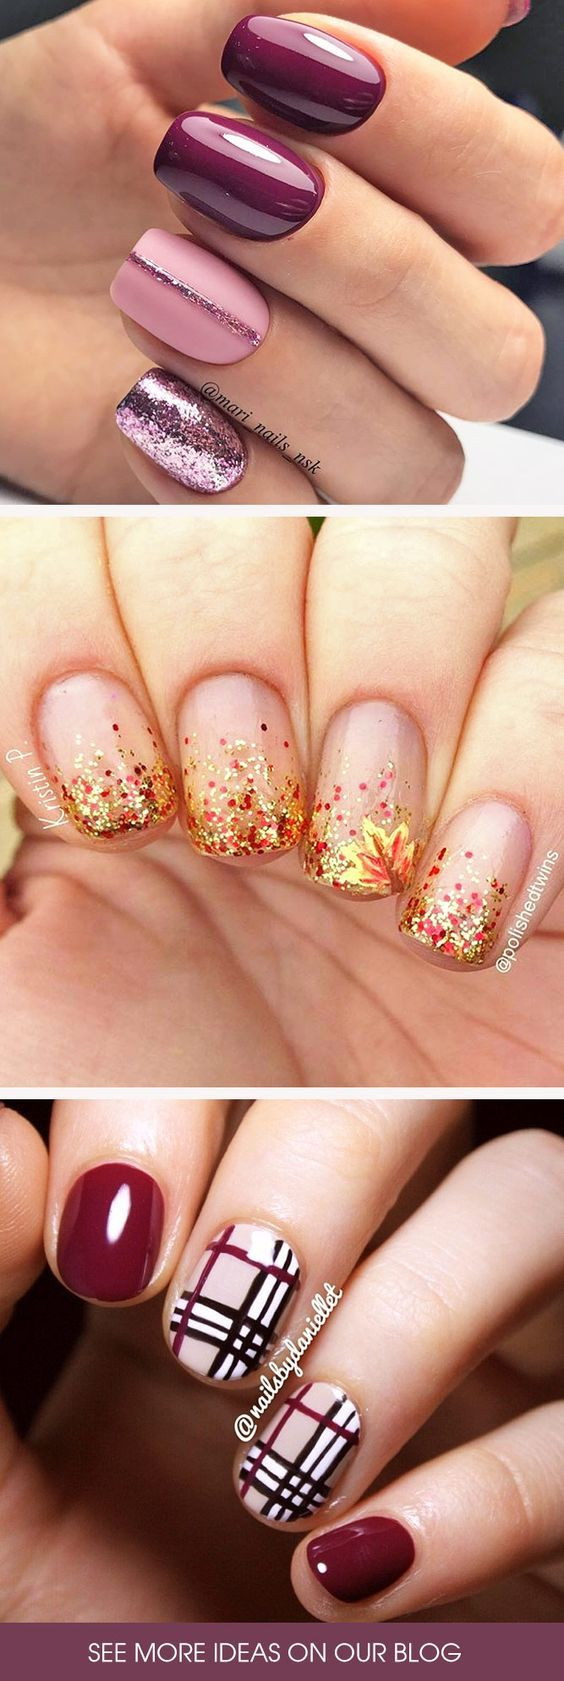 best 25+ fall nails ideas on pinterest | fall nail colors, cute